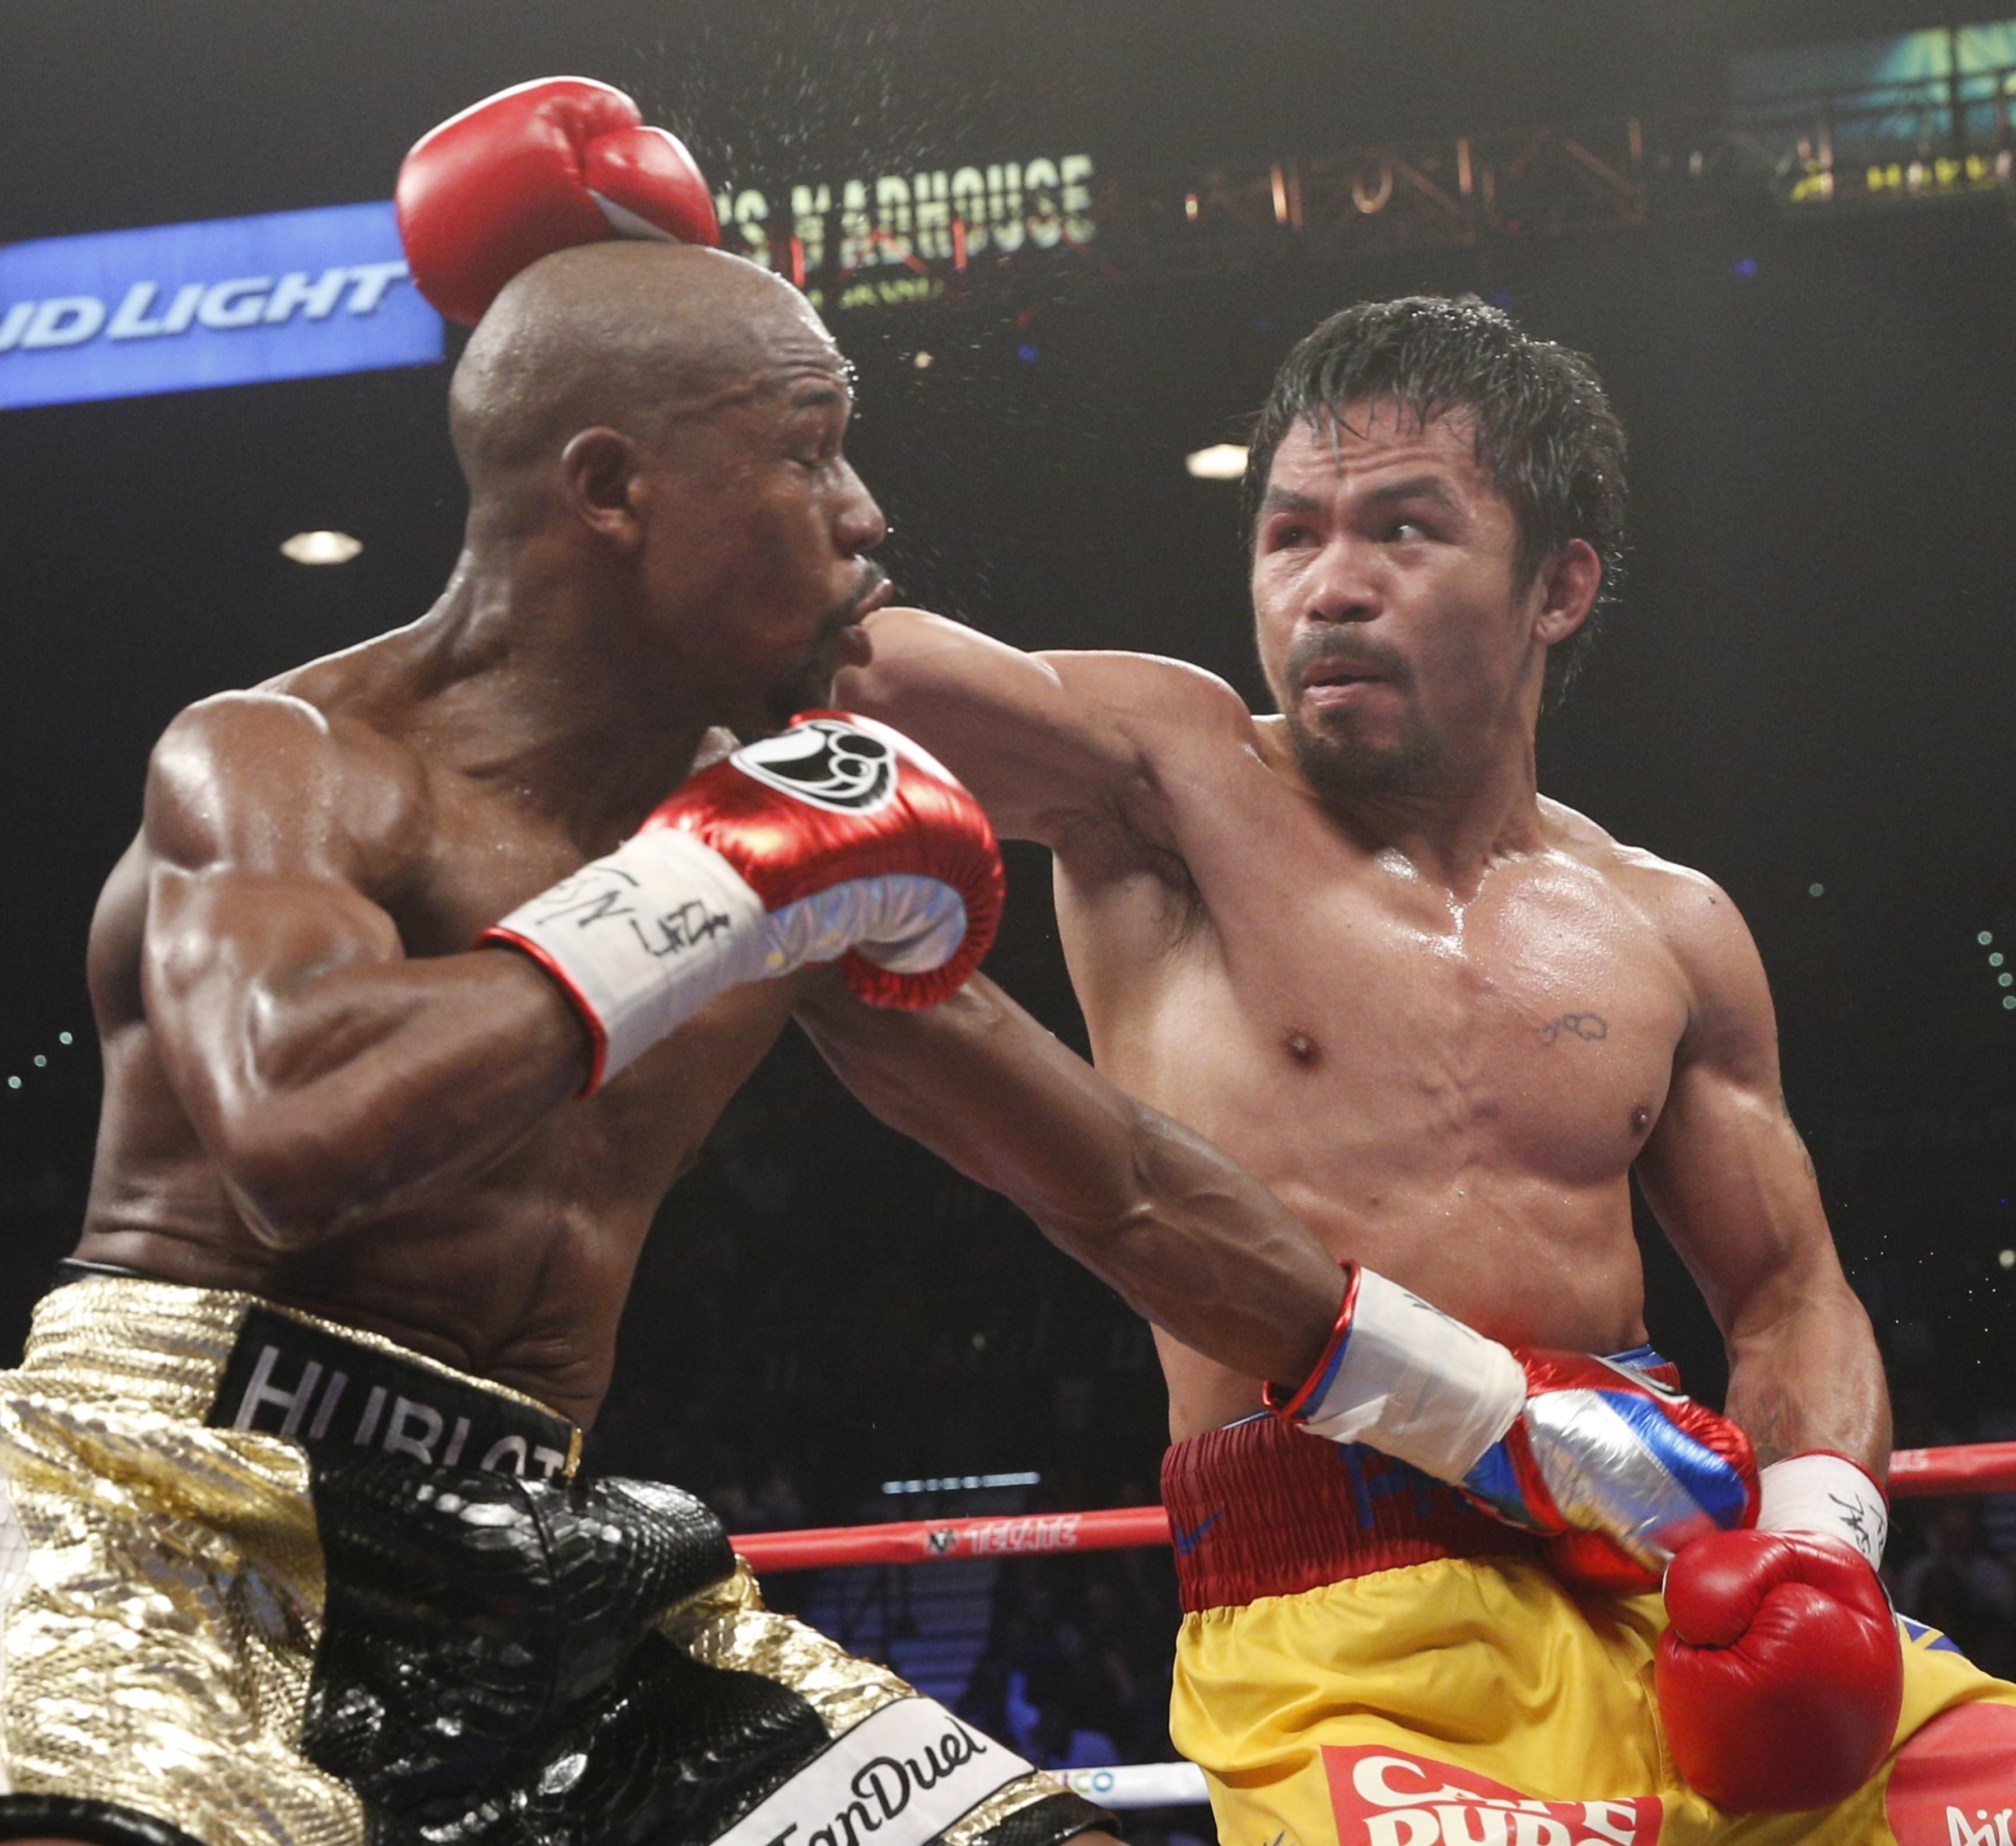 Pacquiao also said he would give Floyd Mayweather a shot at his WBA welterweight title in a rematch of their 2015 fight which he lost via a unanimous decision